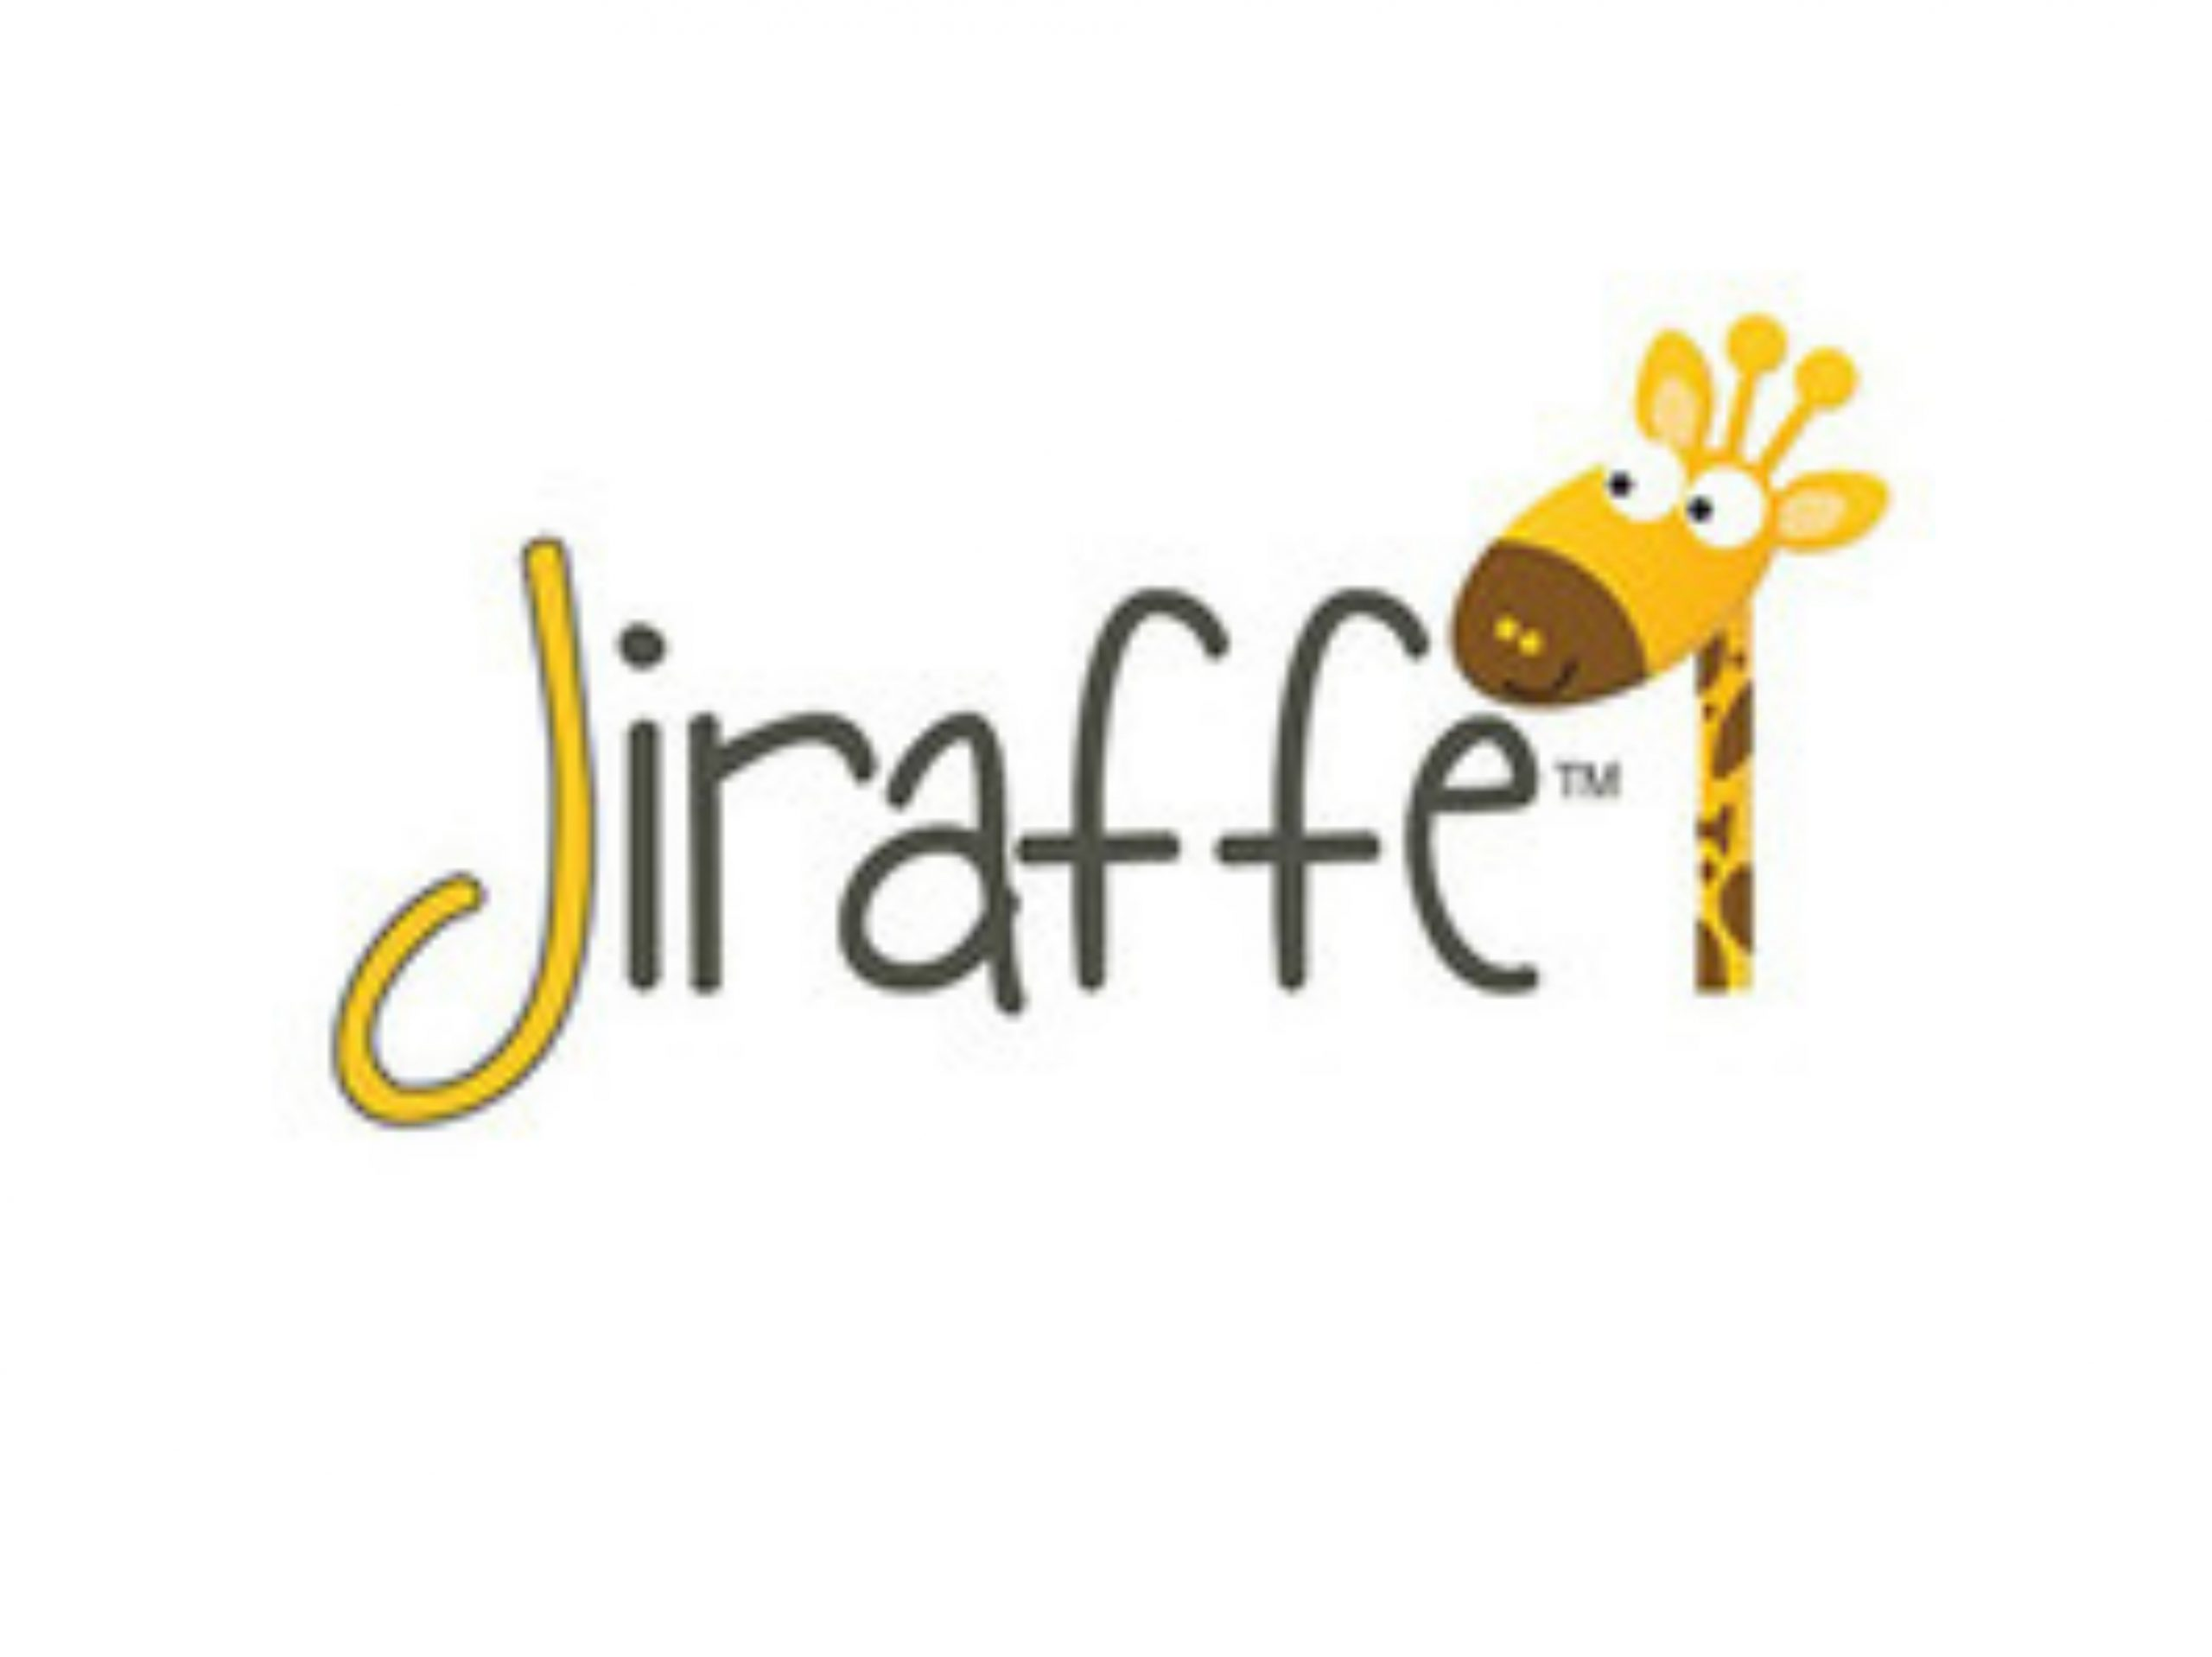 Jiraffe offer Face to Face Appointments during Covid-19